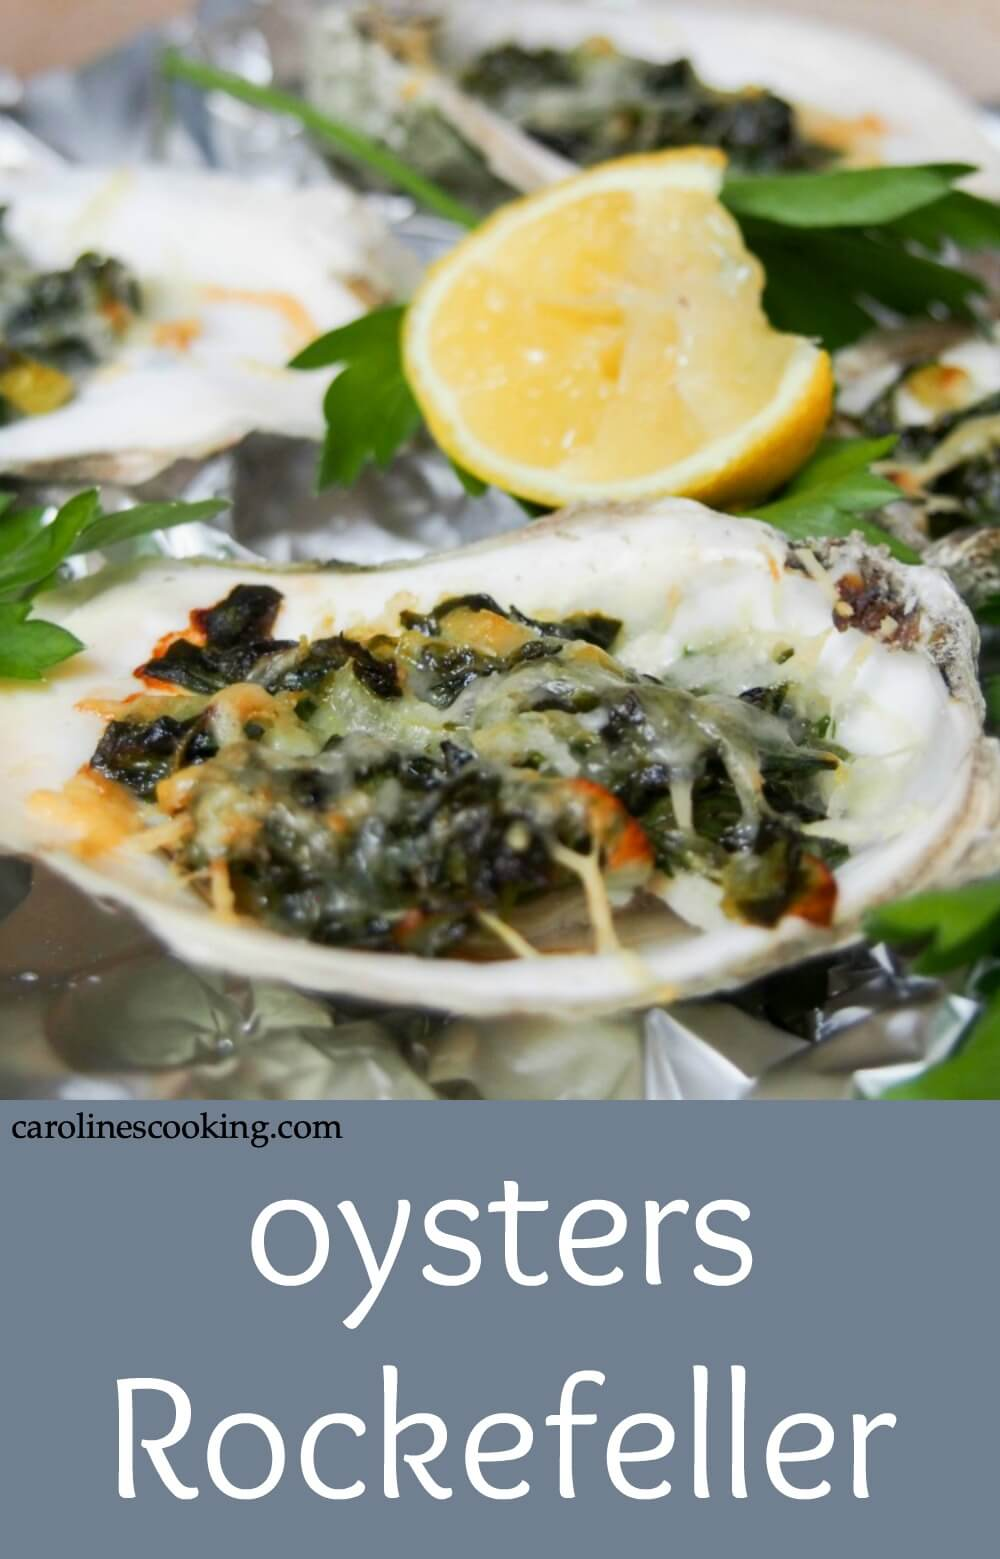 Oysters Rockefeller are a classic New Orleans appetizer with a tasty topping baked over oysters in their shell. Here they're lightened up but packed with flavor in the spinach-based topping. Perfect for date night, a fancy dinner party or any excuse. Includes video tutorial with how to shuck an oyster. #oysters #mardigras #bakedoyster